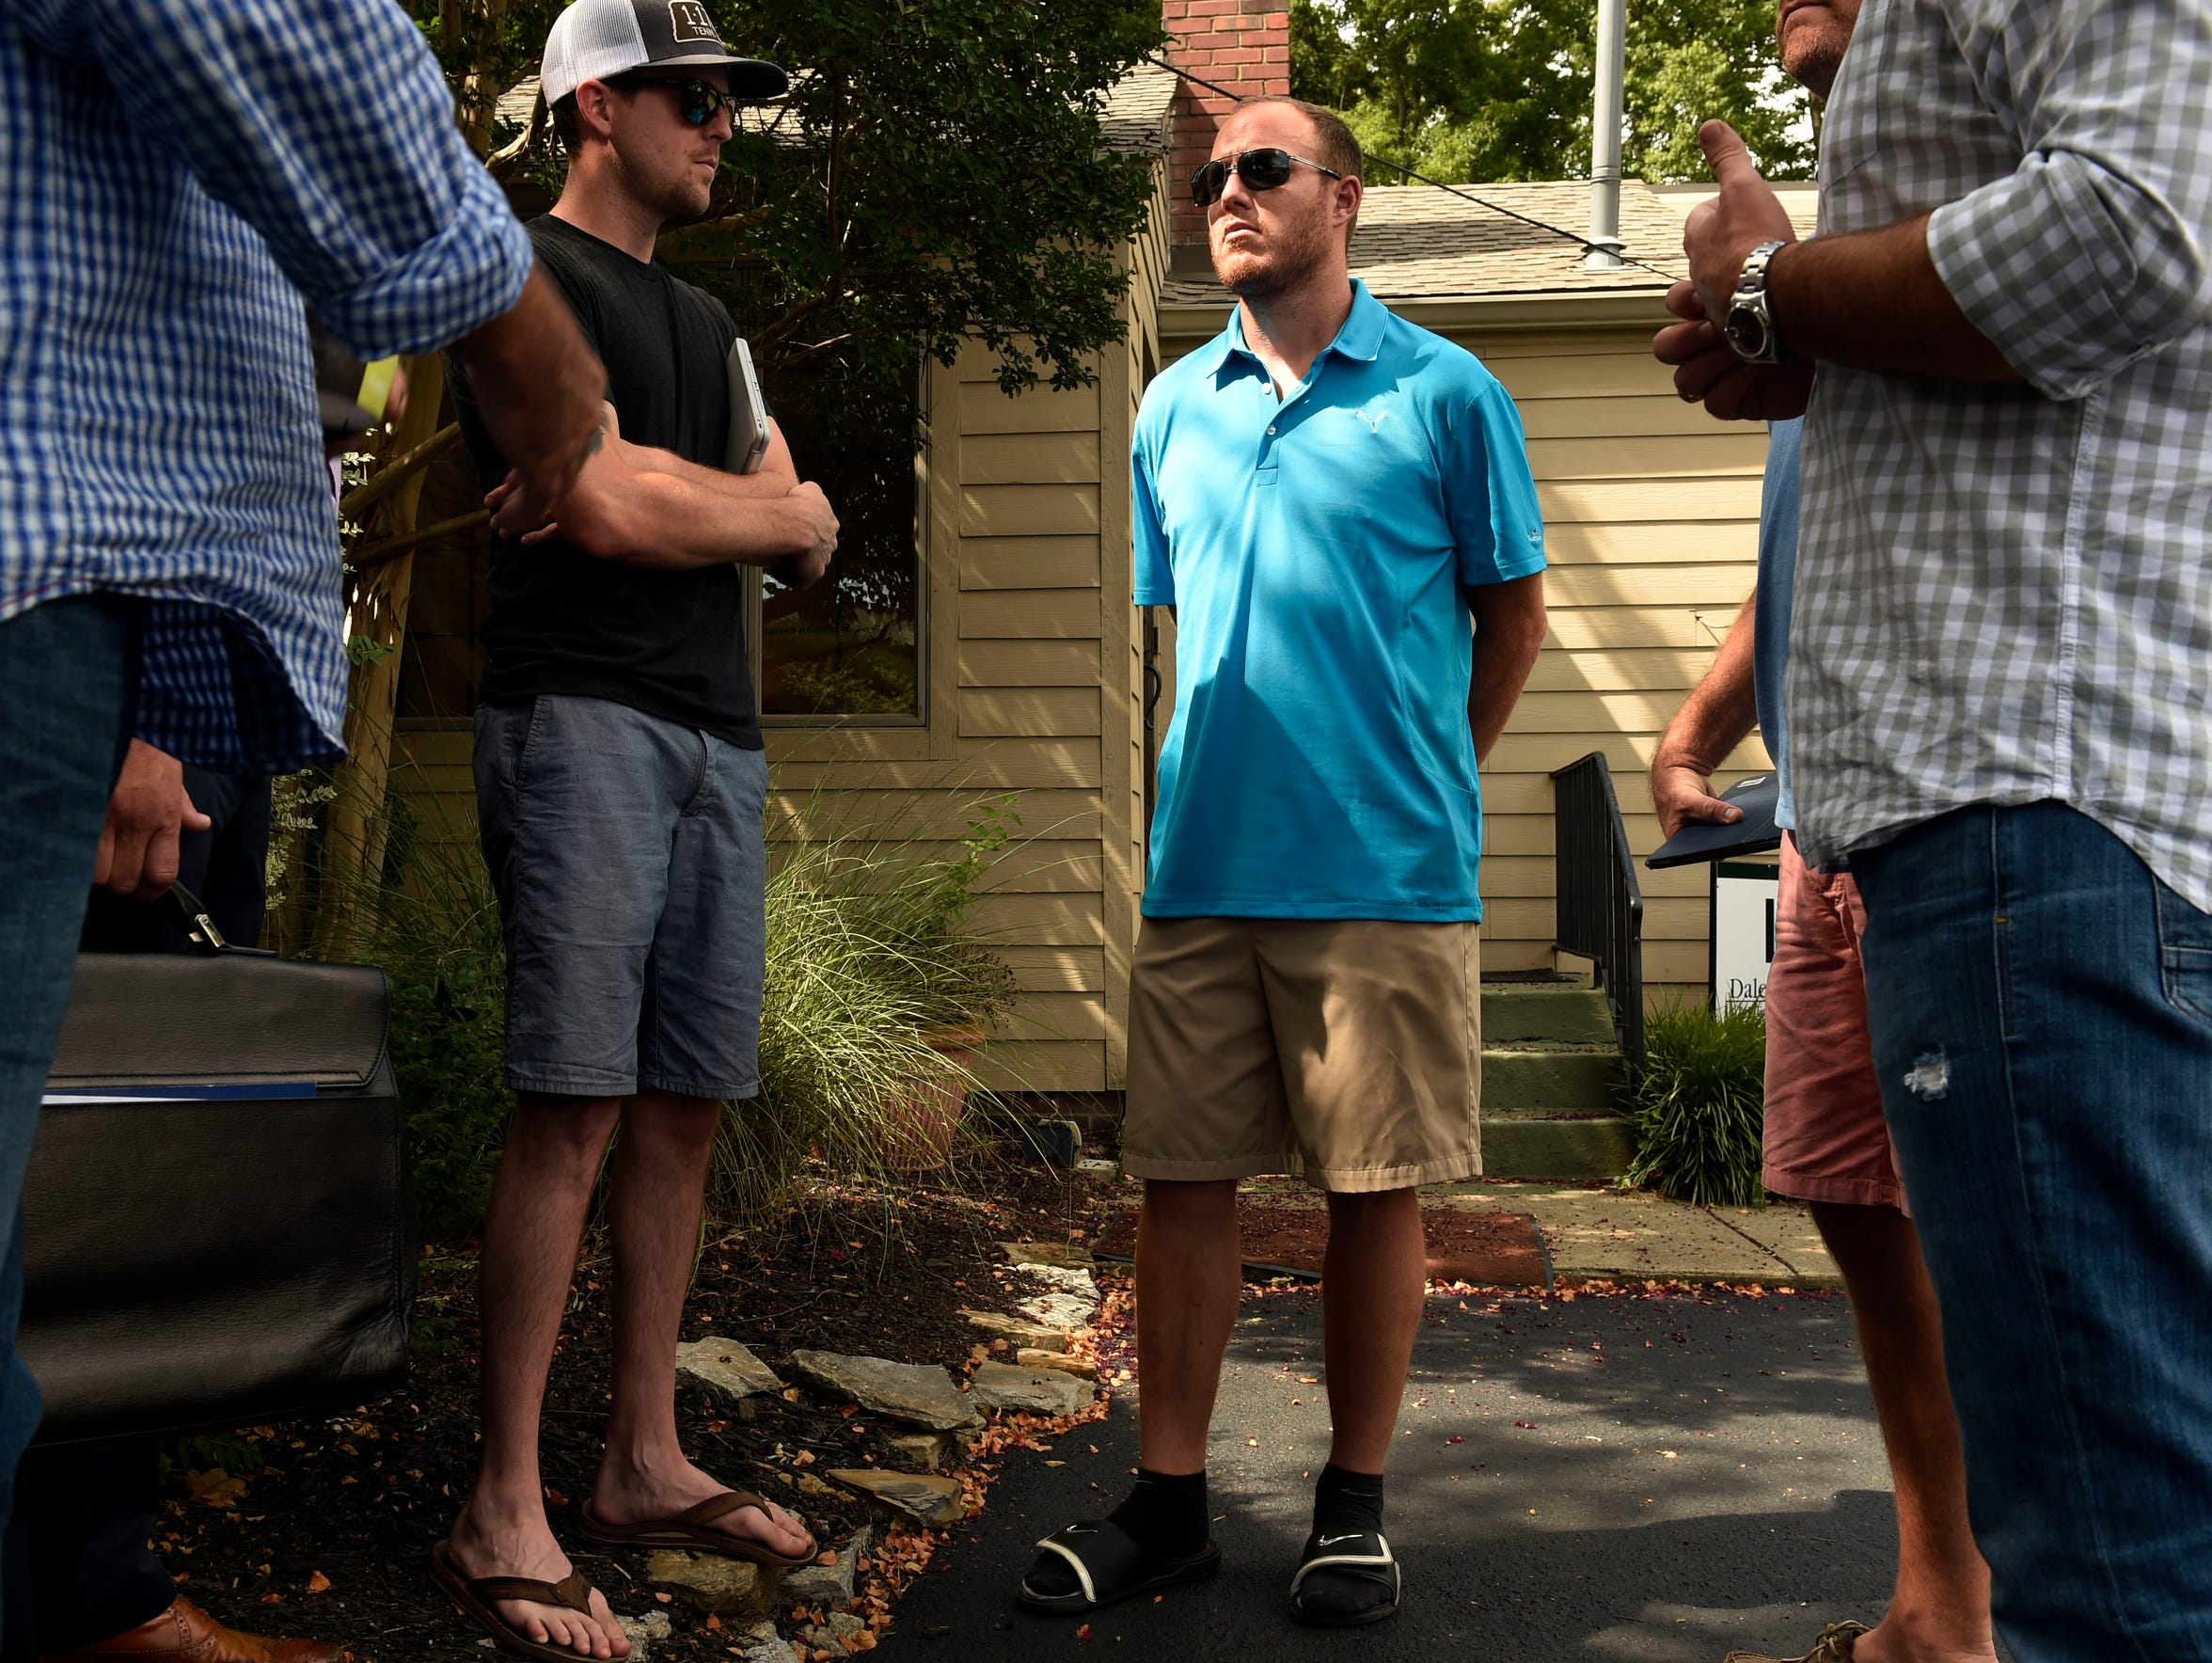 Tim Shaw chats with his business partners on July 21.